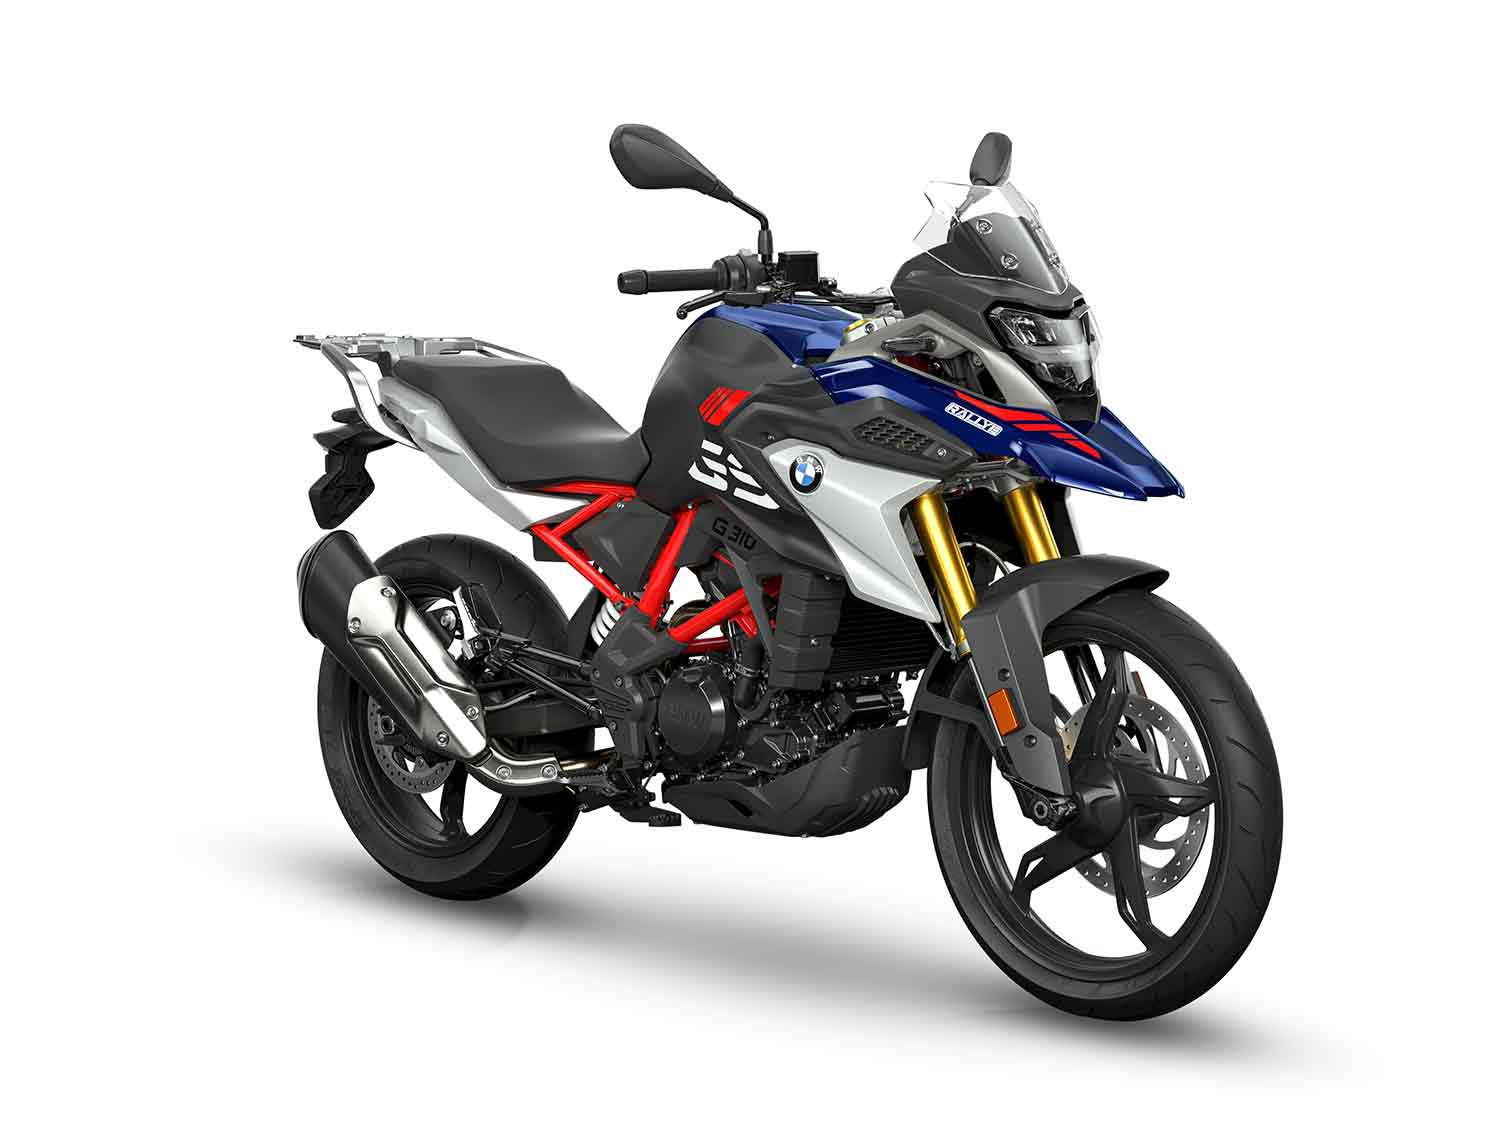 2021 BMW G 310 GS in the Rally colorway.